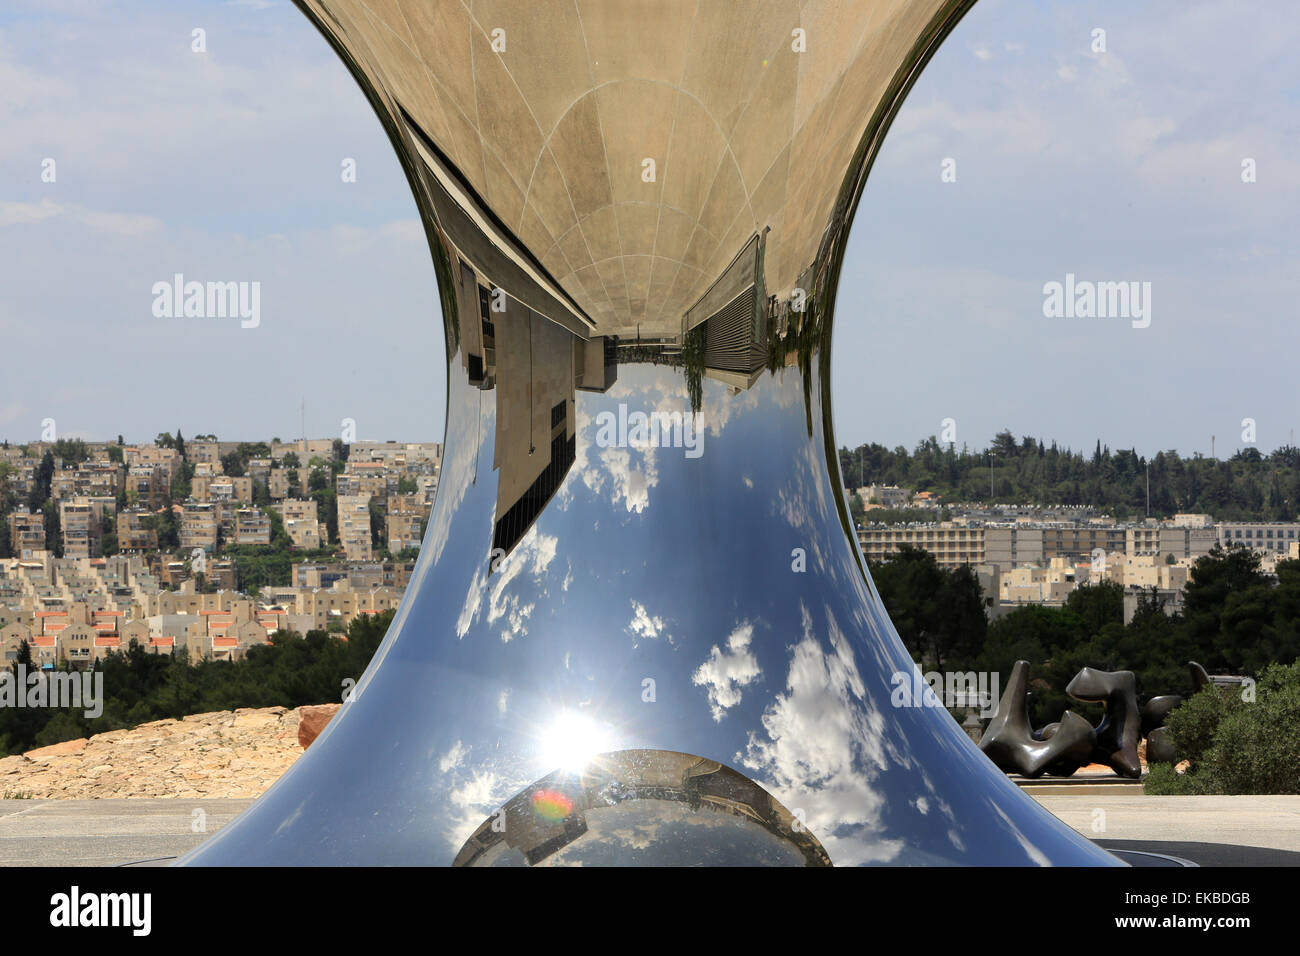 Turning the world upside down by Anish Kapoor, at the Israel Museum, Jerusalem - Stock Image